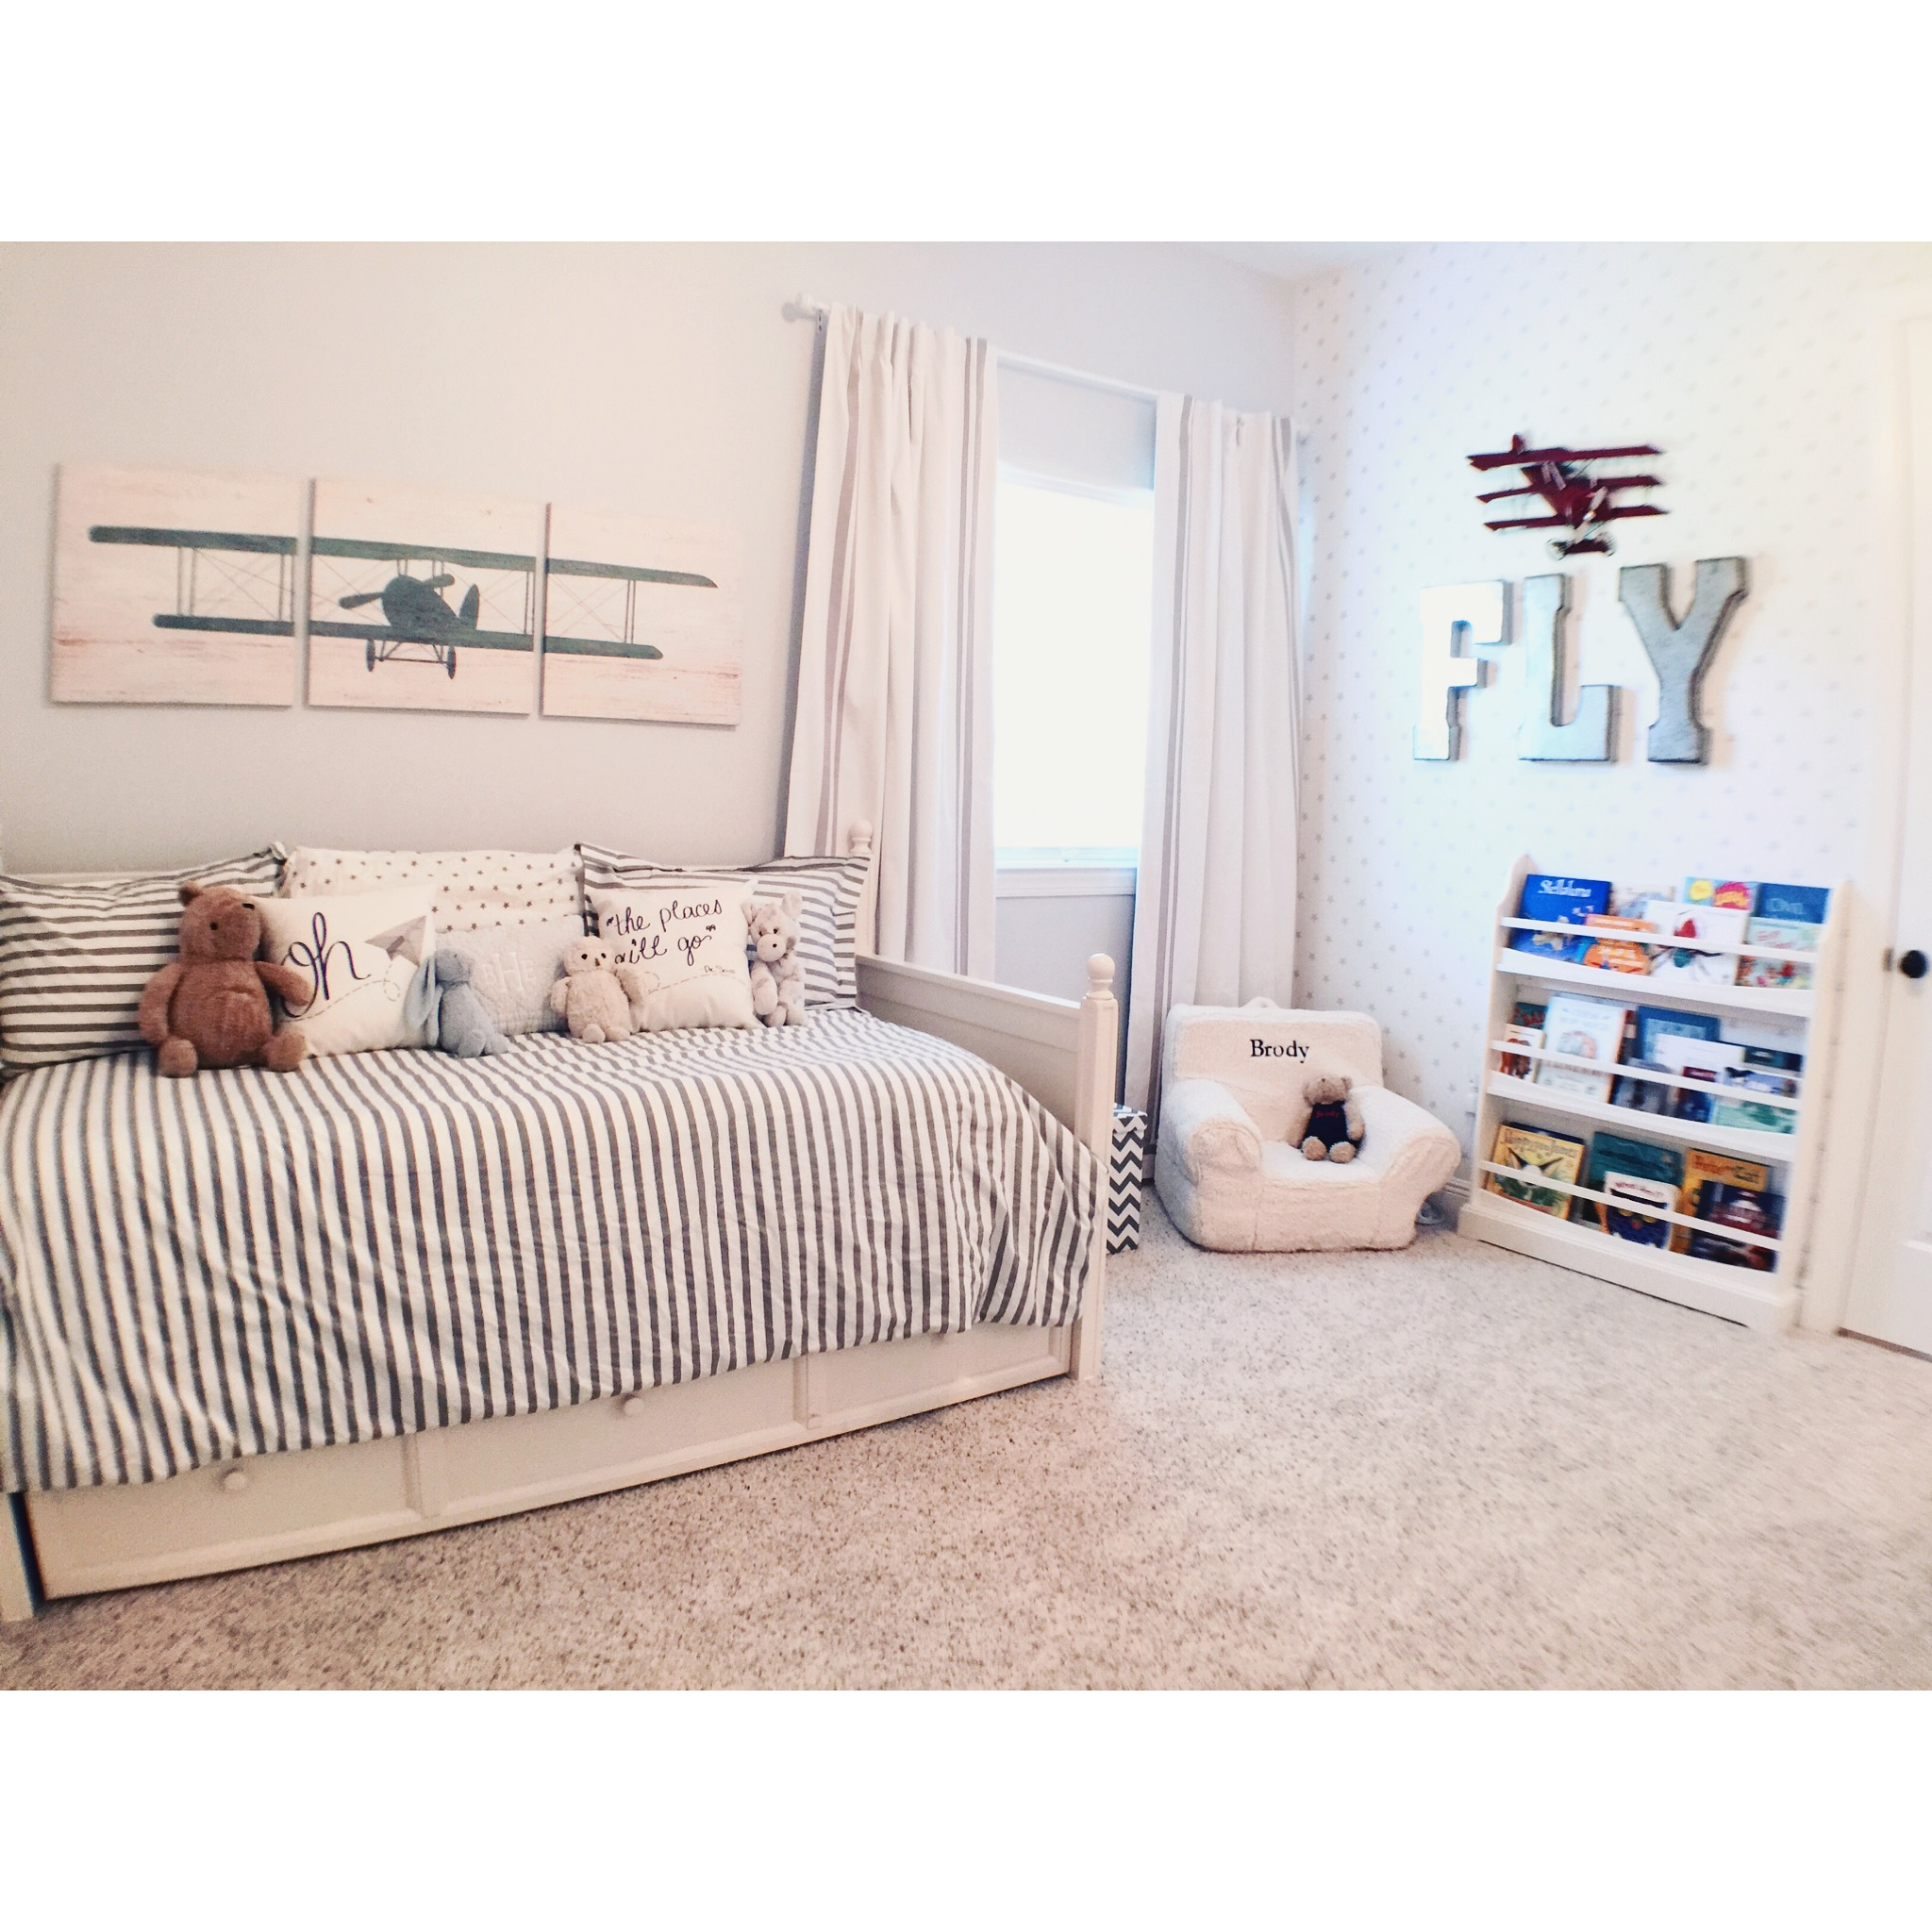 Amelia S Room Toddler Bedroom: Airplane Themed Toddler Room